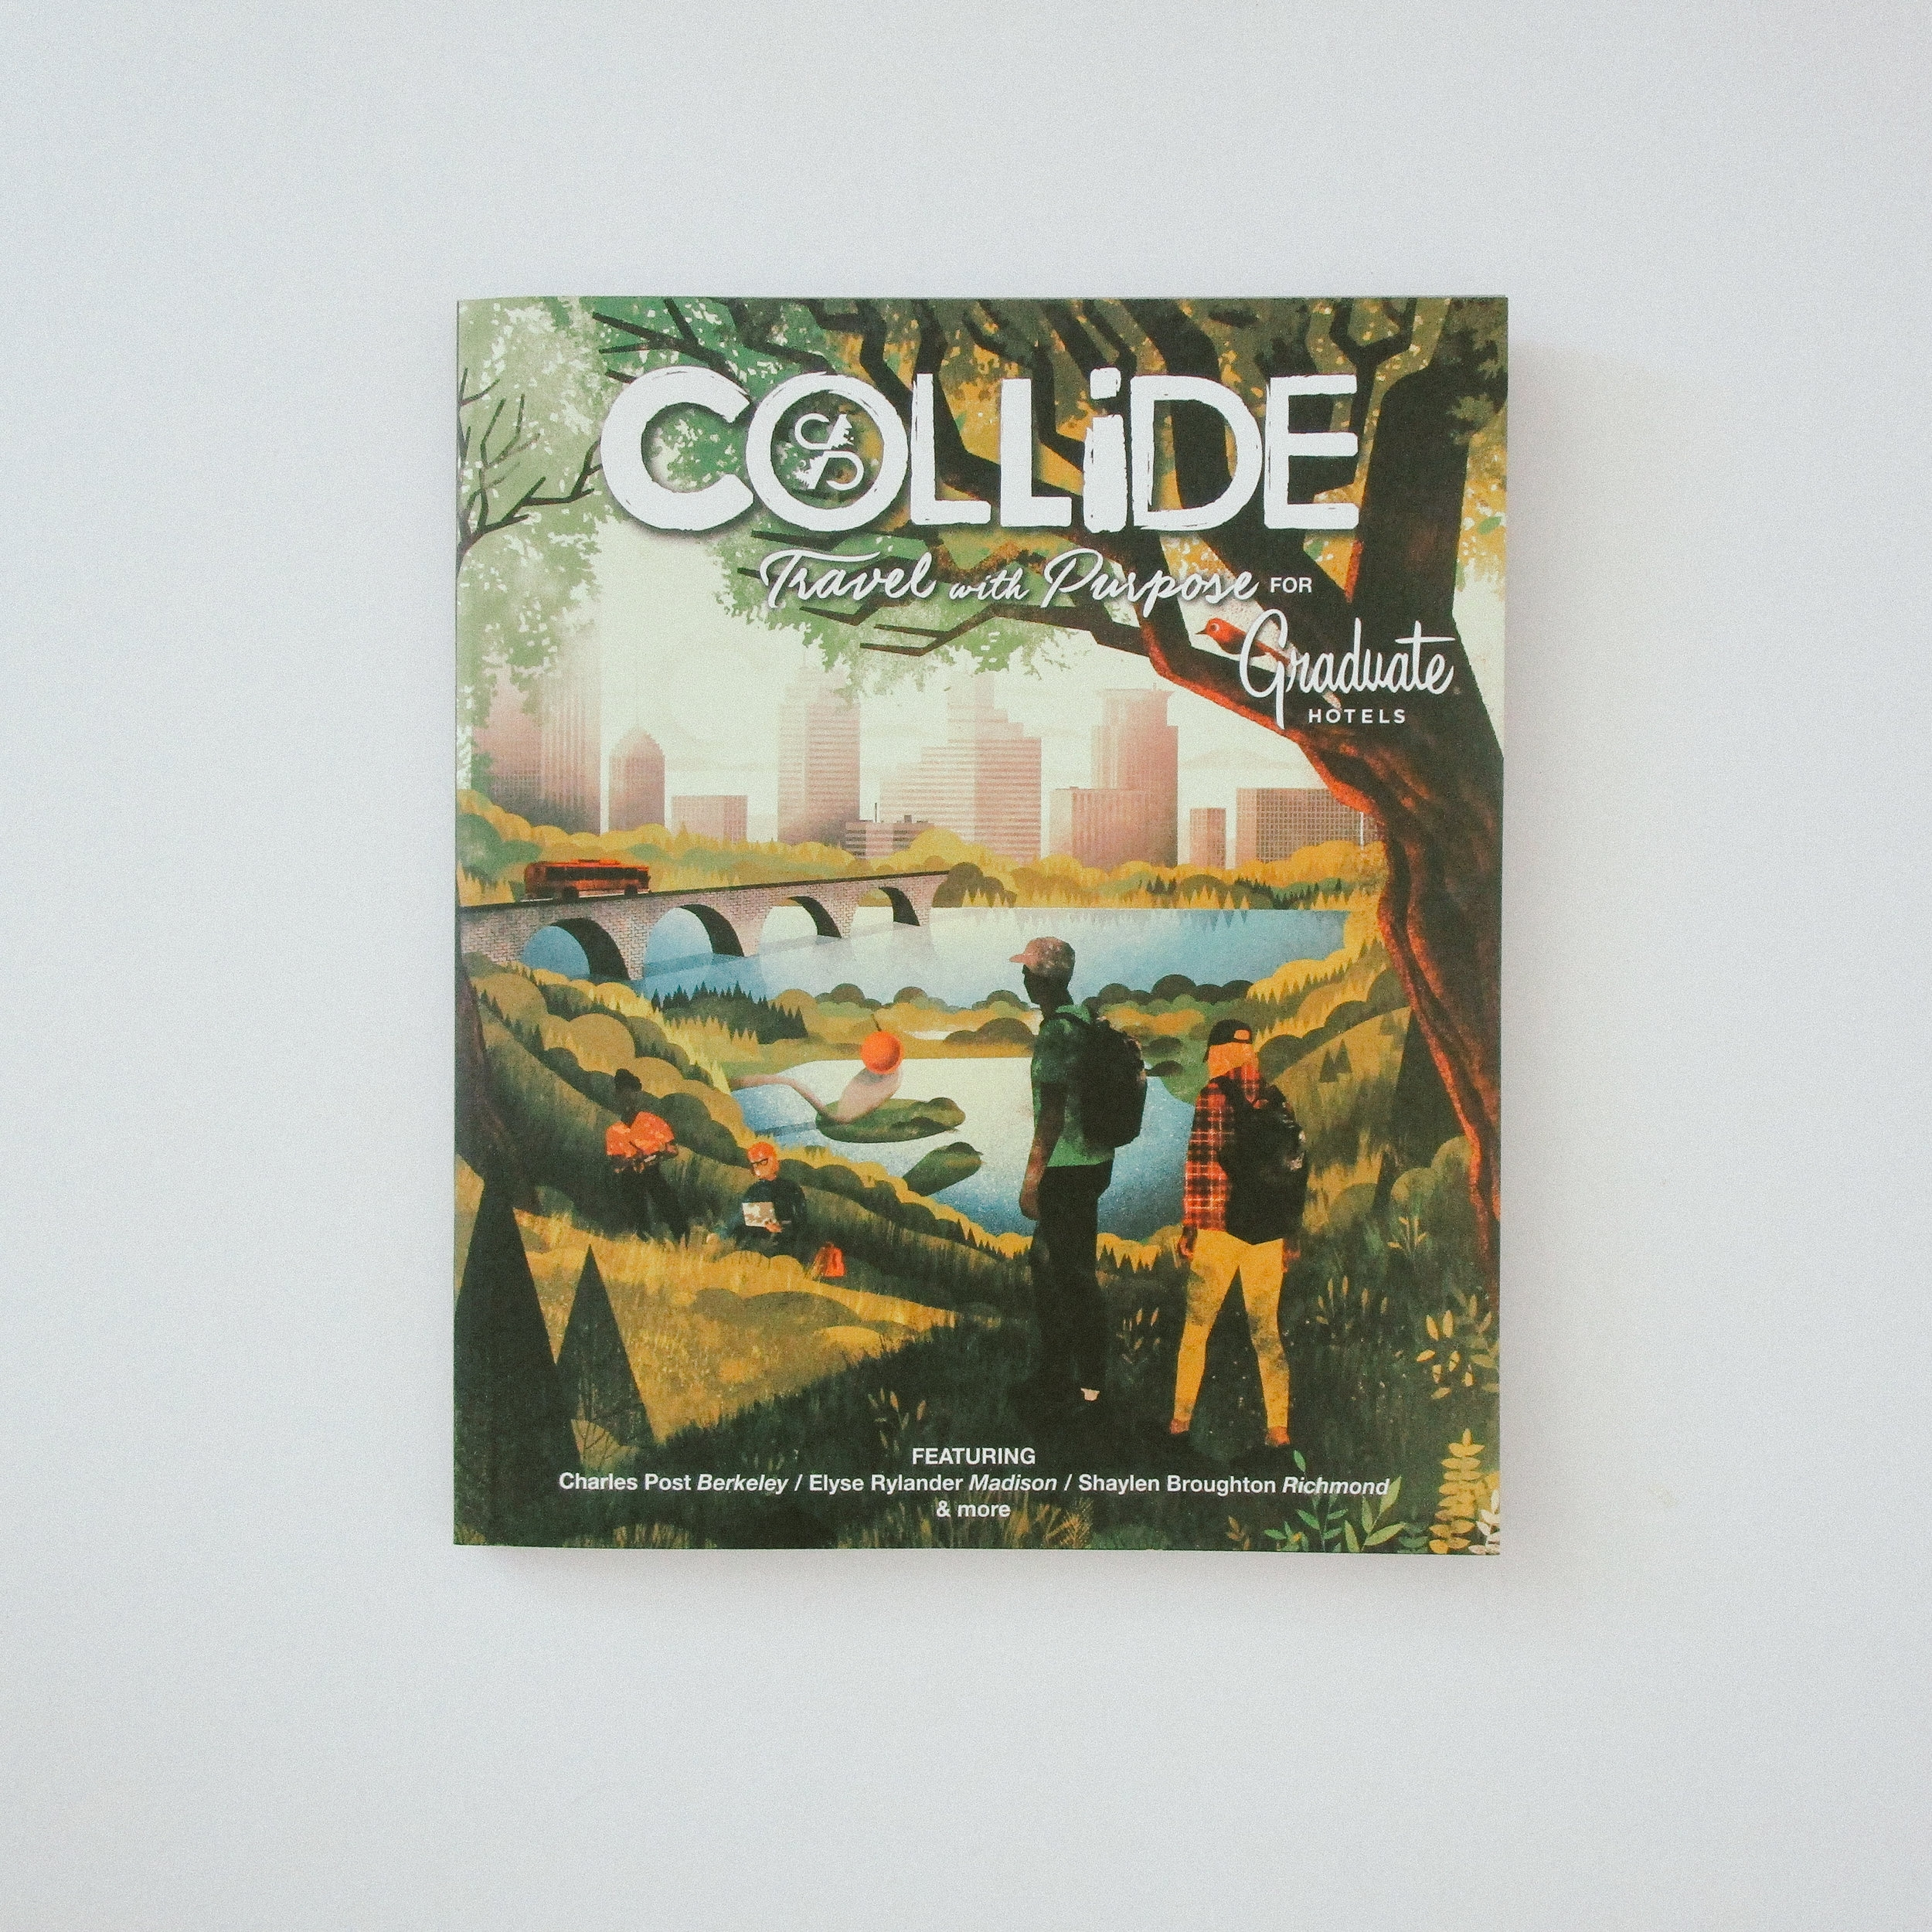 Editorial director for  Graduate Hotels Print Issue 02  Outdoor Edition